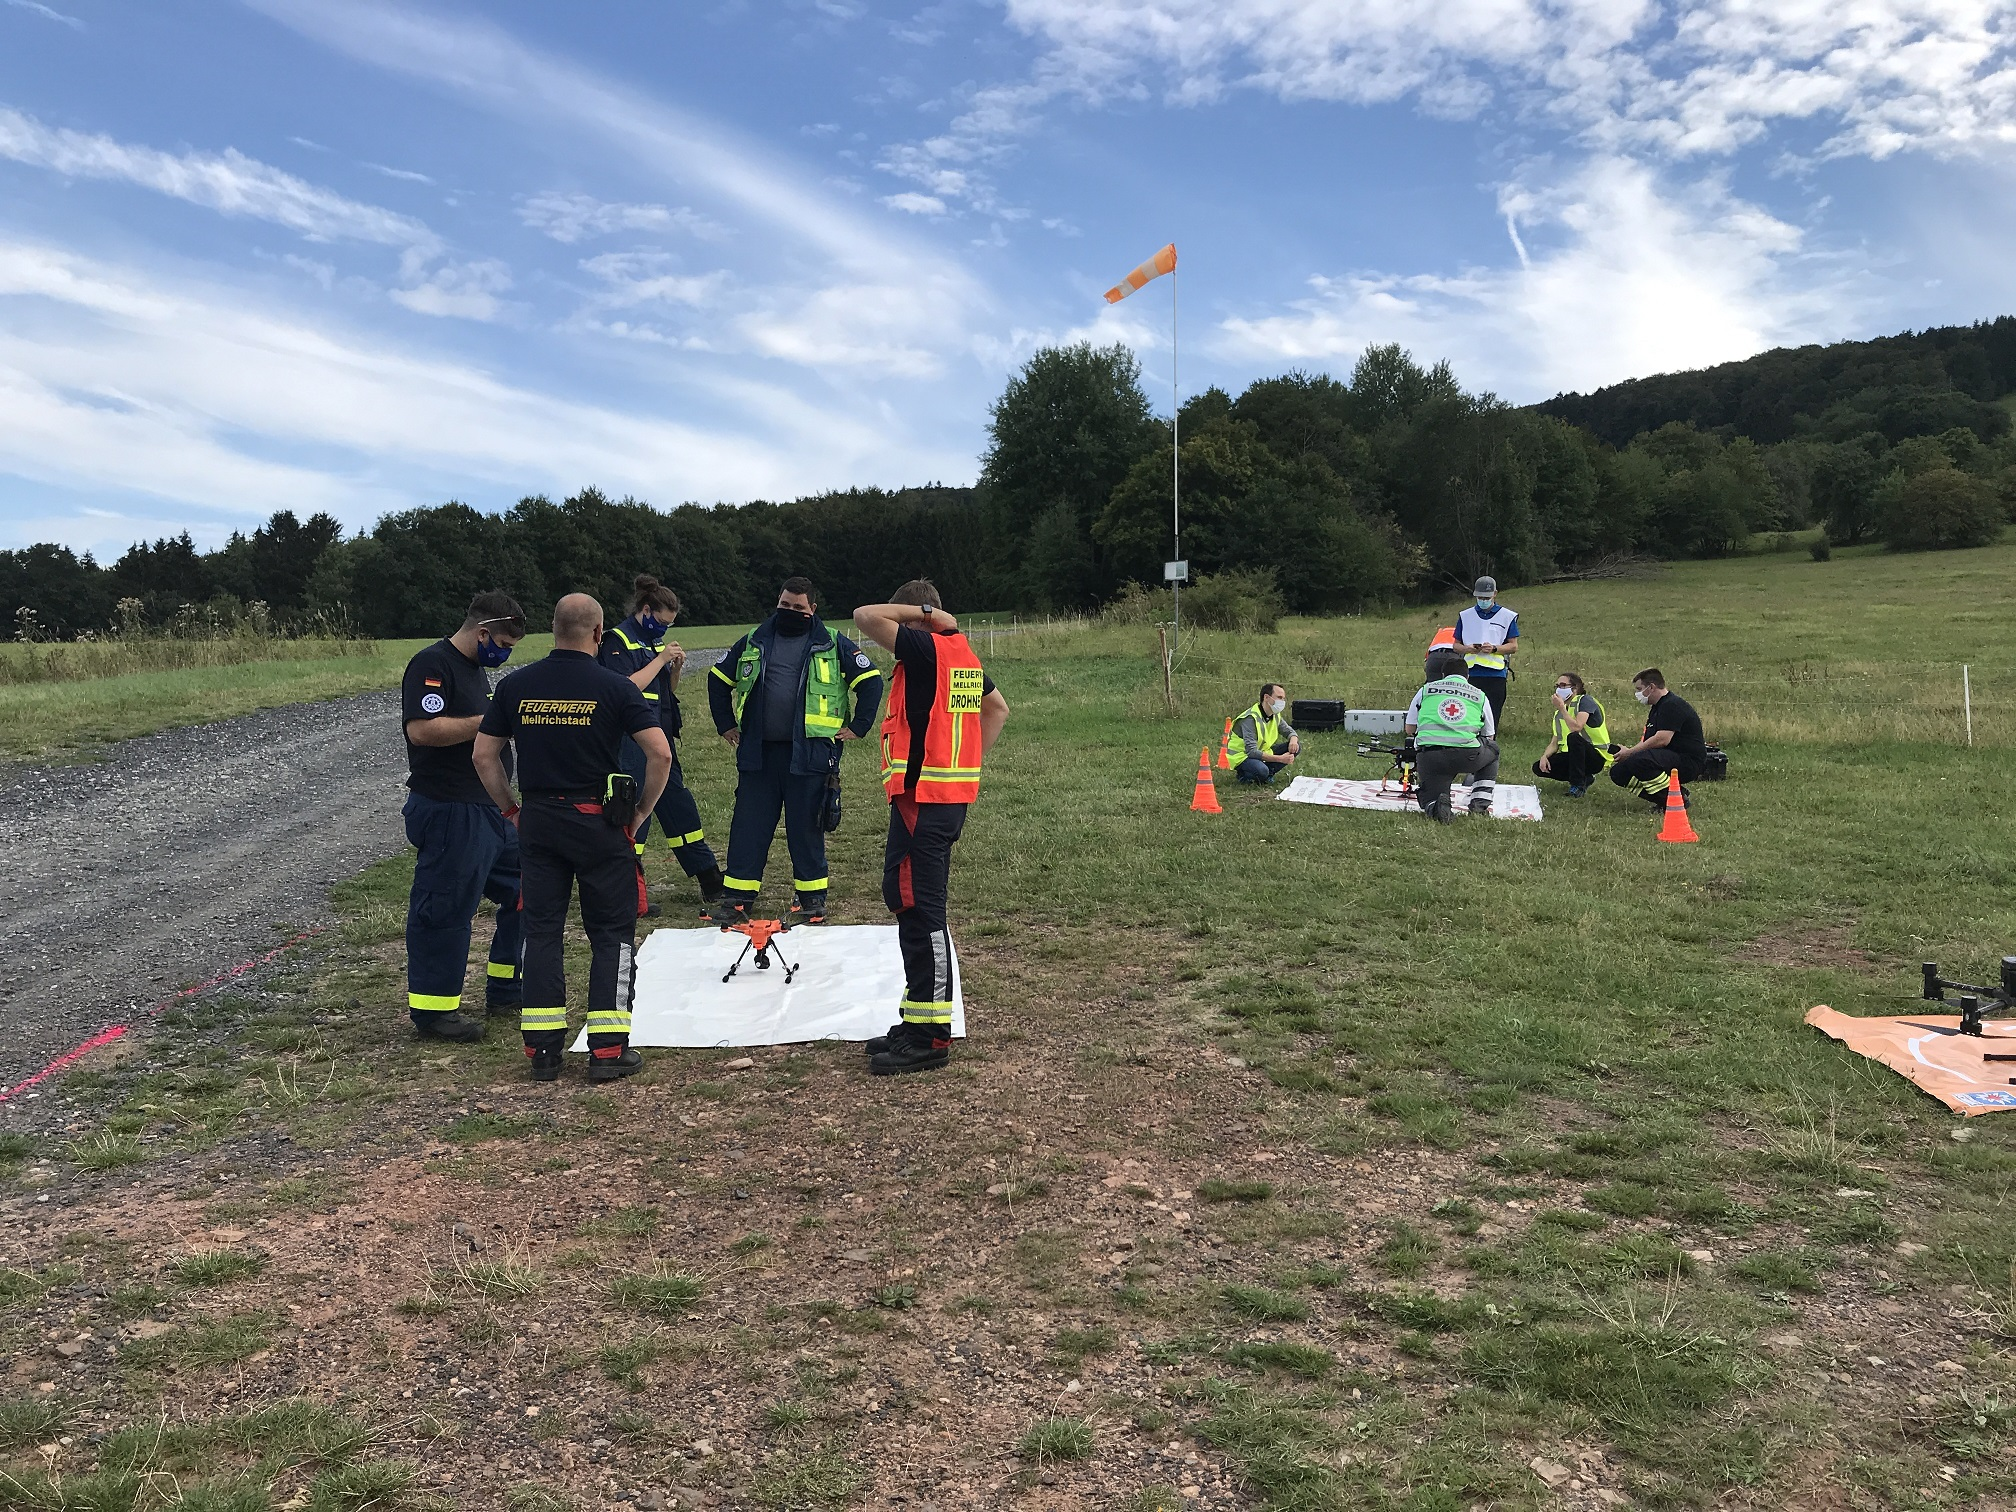 ResponDrone partners continue to forge ahead with attending first responder training and exercises